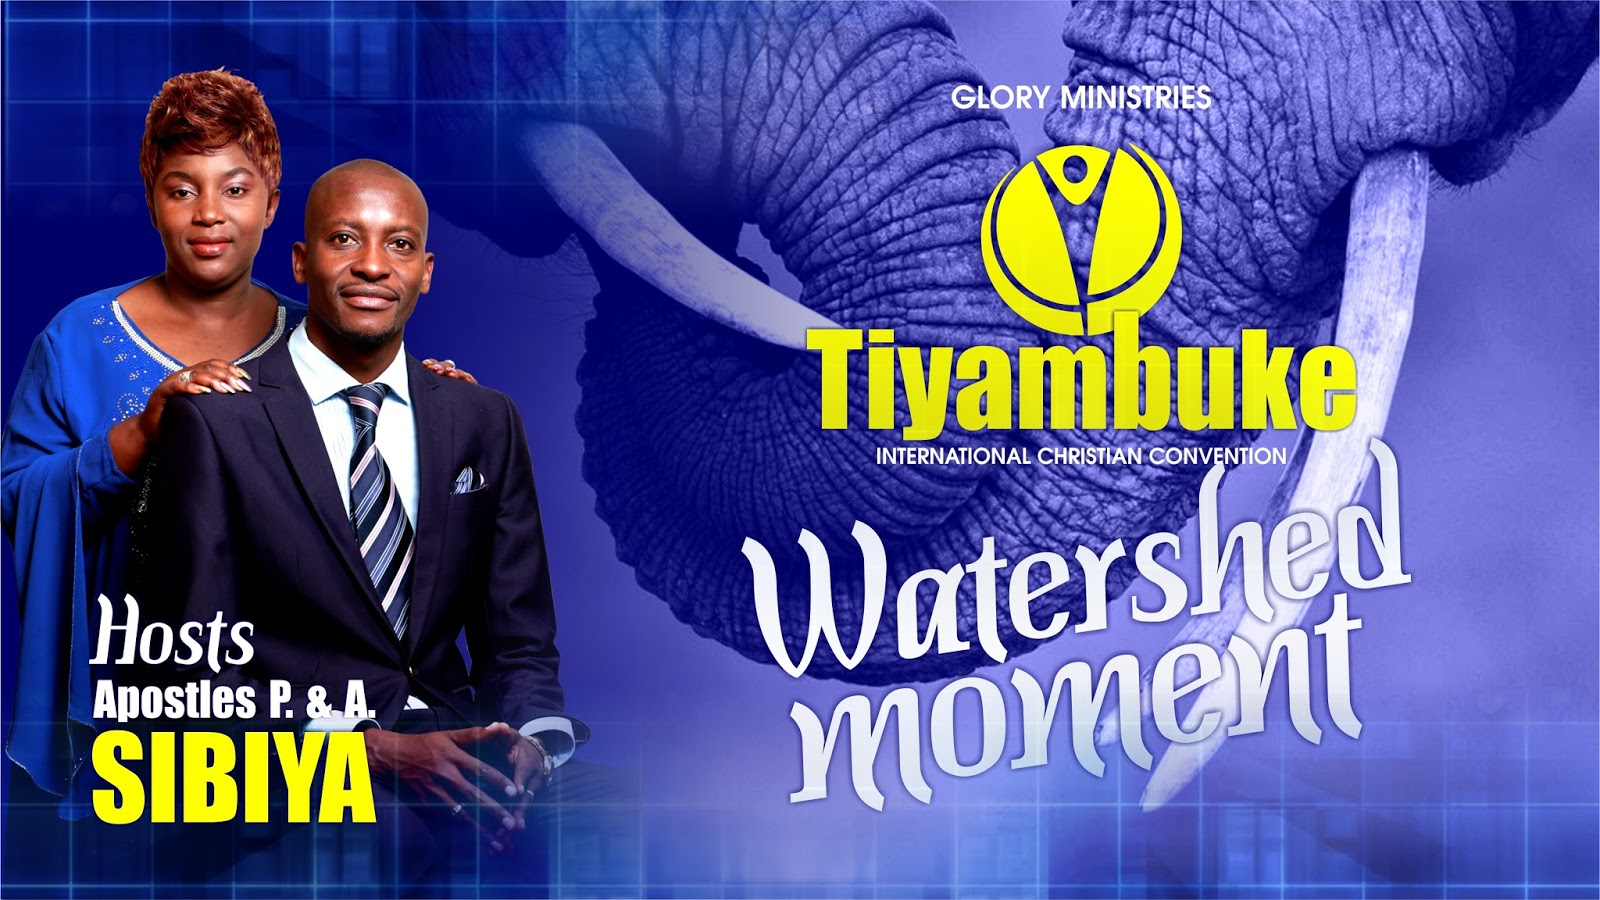 Tiyambuke 2017 Theme - Watershed Moment